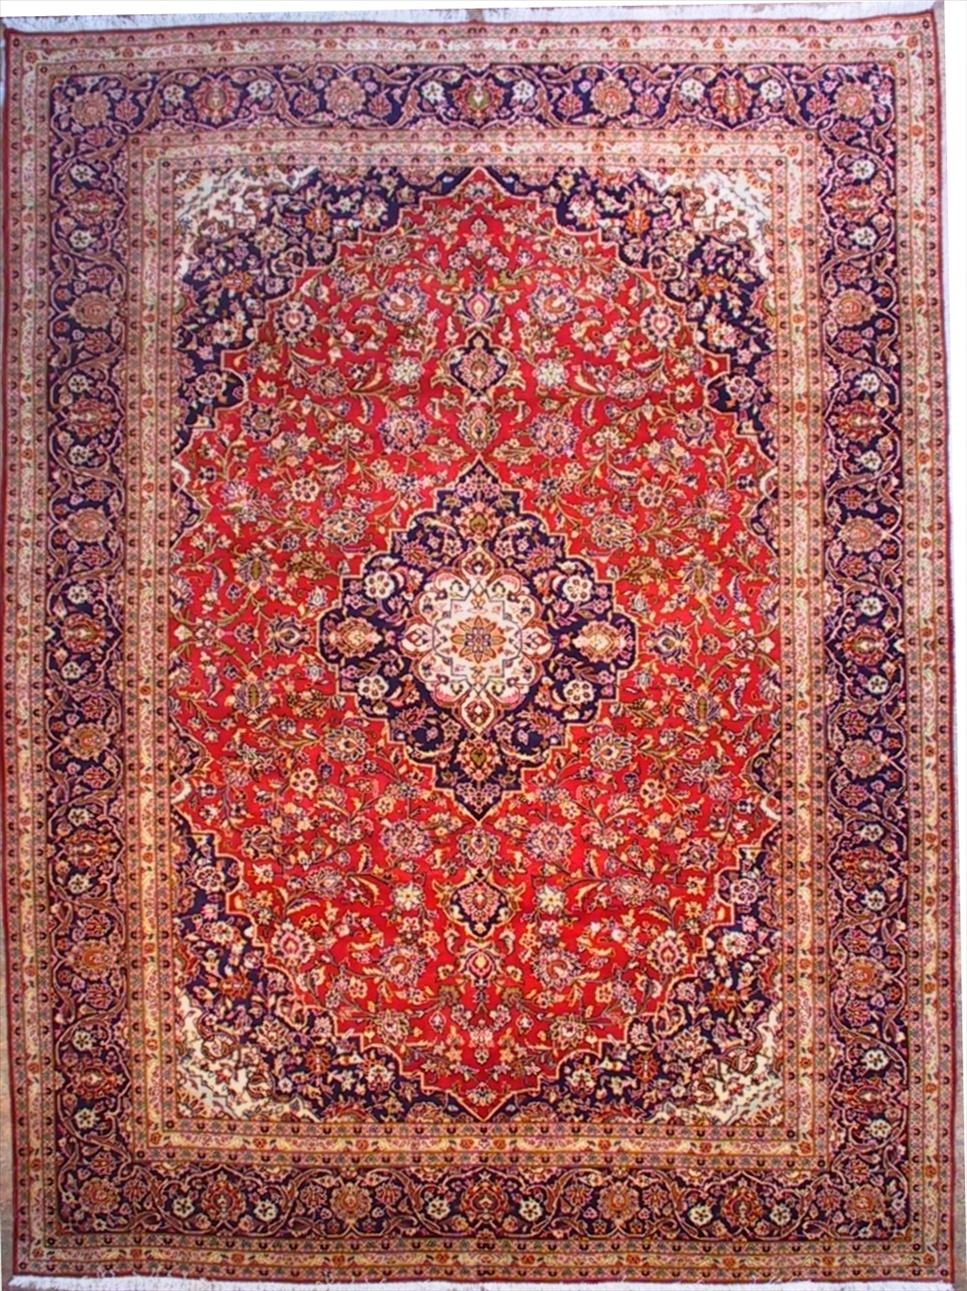 Spectacular Aubusson Carpet | Engaging Aubusson Rugs